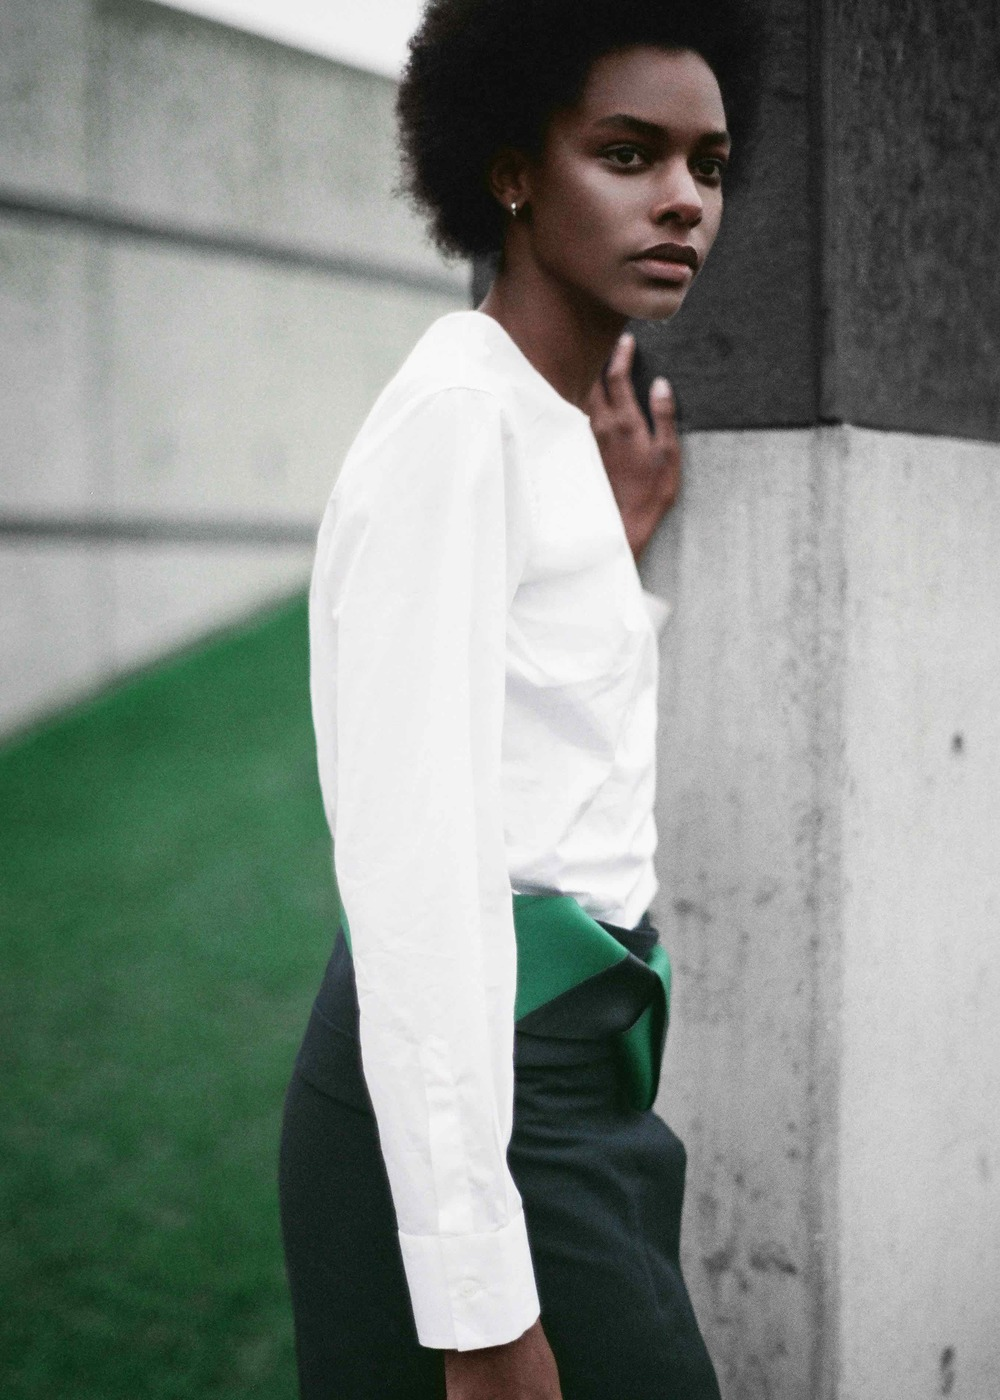 White cotton poplin shirt, cotton gabardine wrap skirt, navy and green leather belt, calf leather socks and sandals.